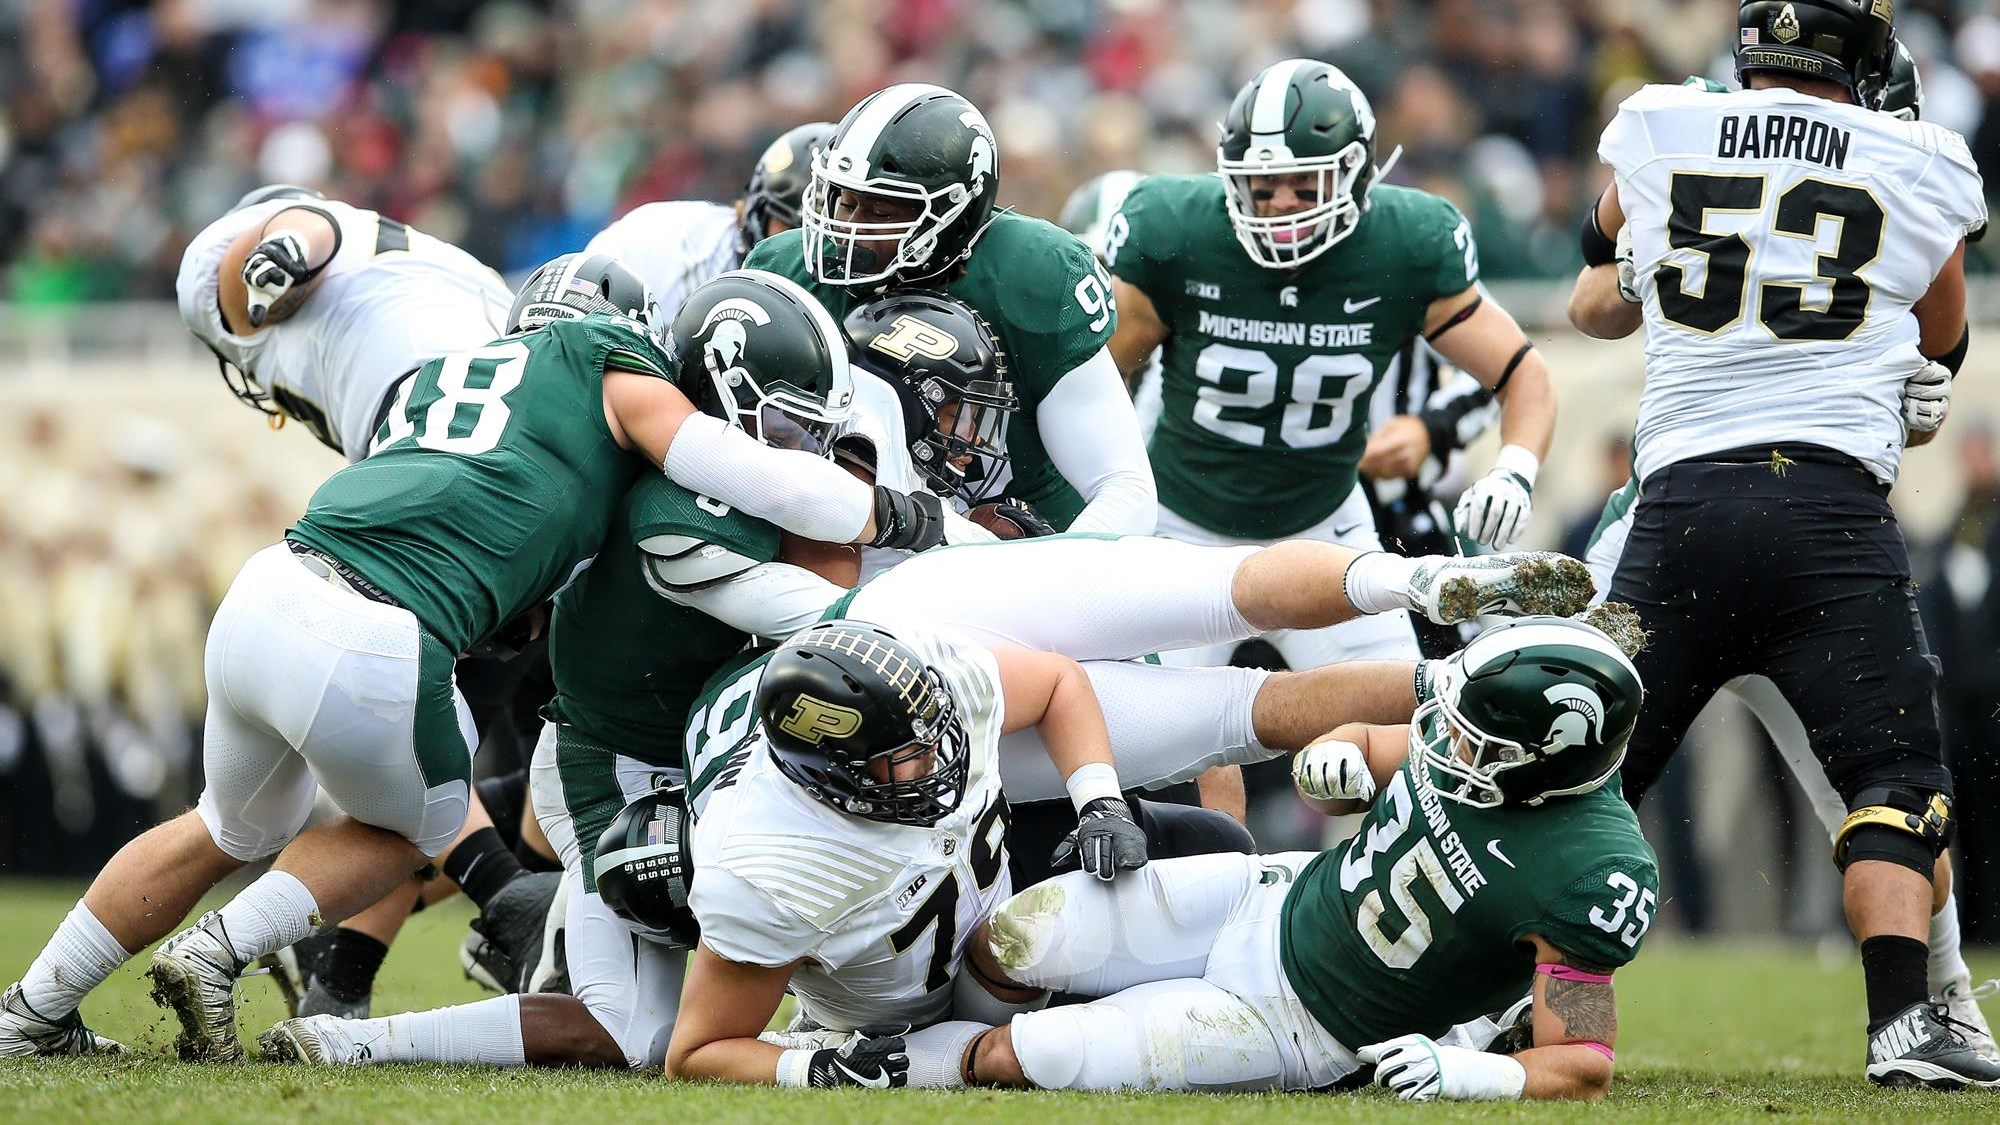 Football - Michigan State University Athletics